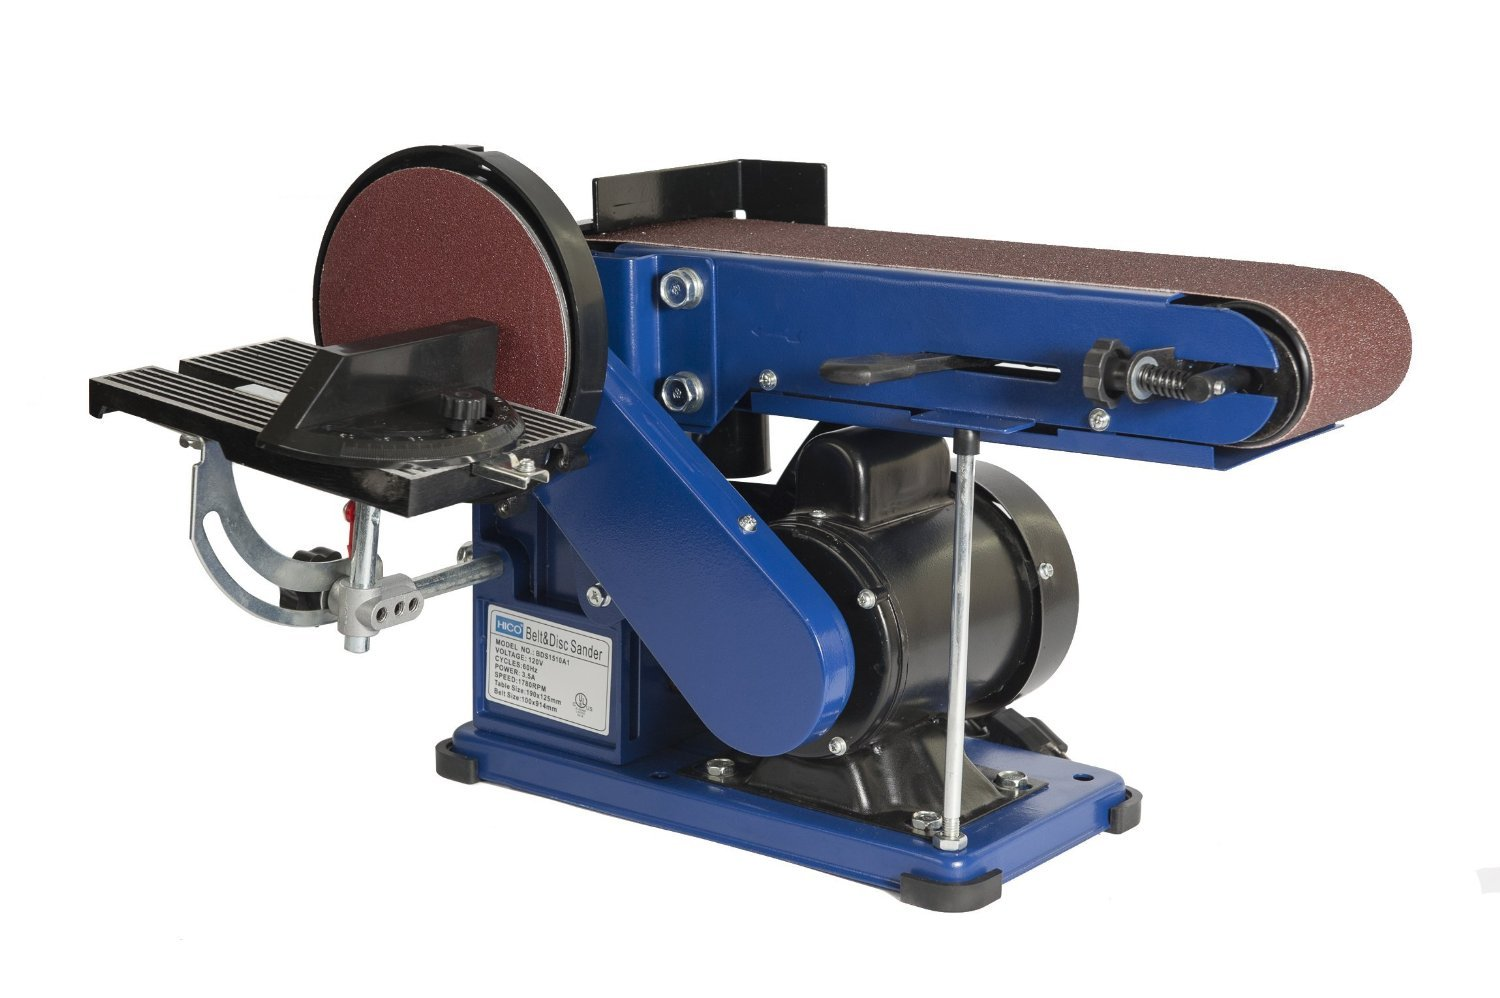 HICO Woodworking 4 x 6-inch Belt and Disc Sander, Wholesale